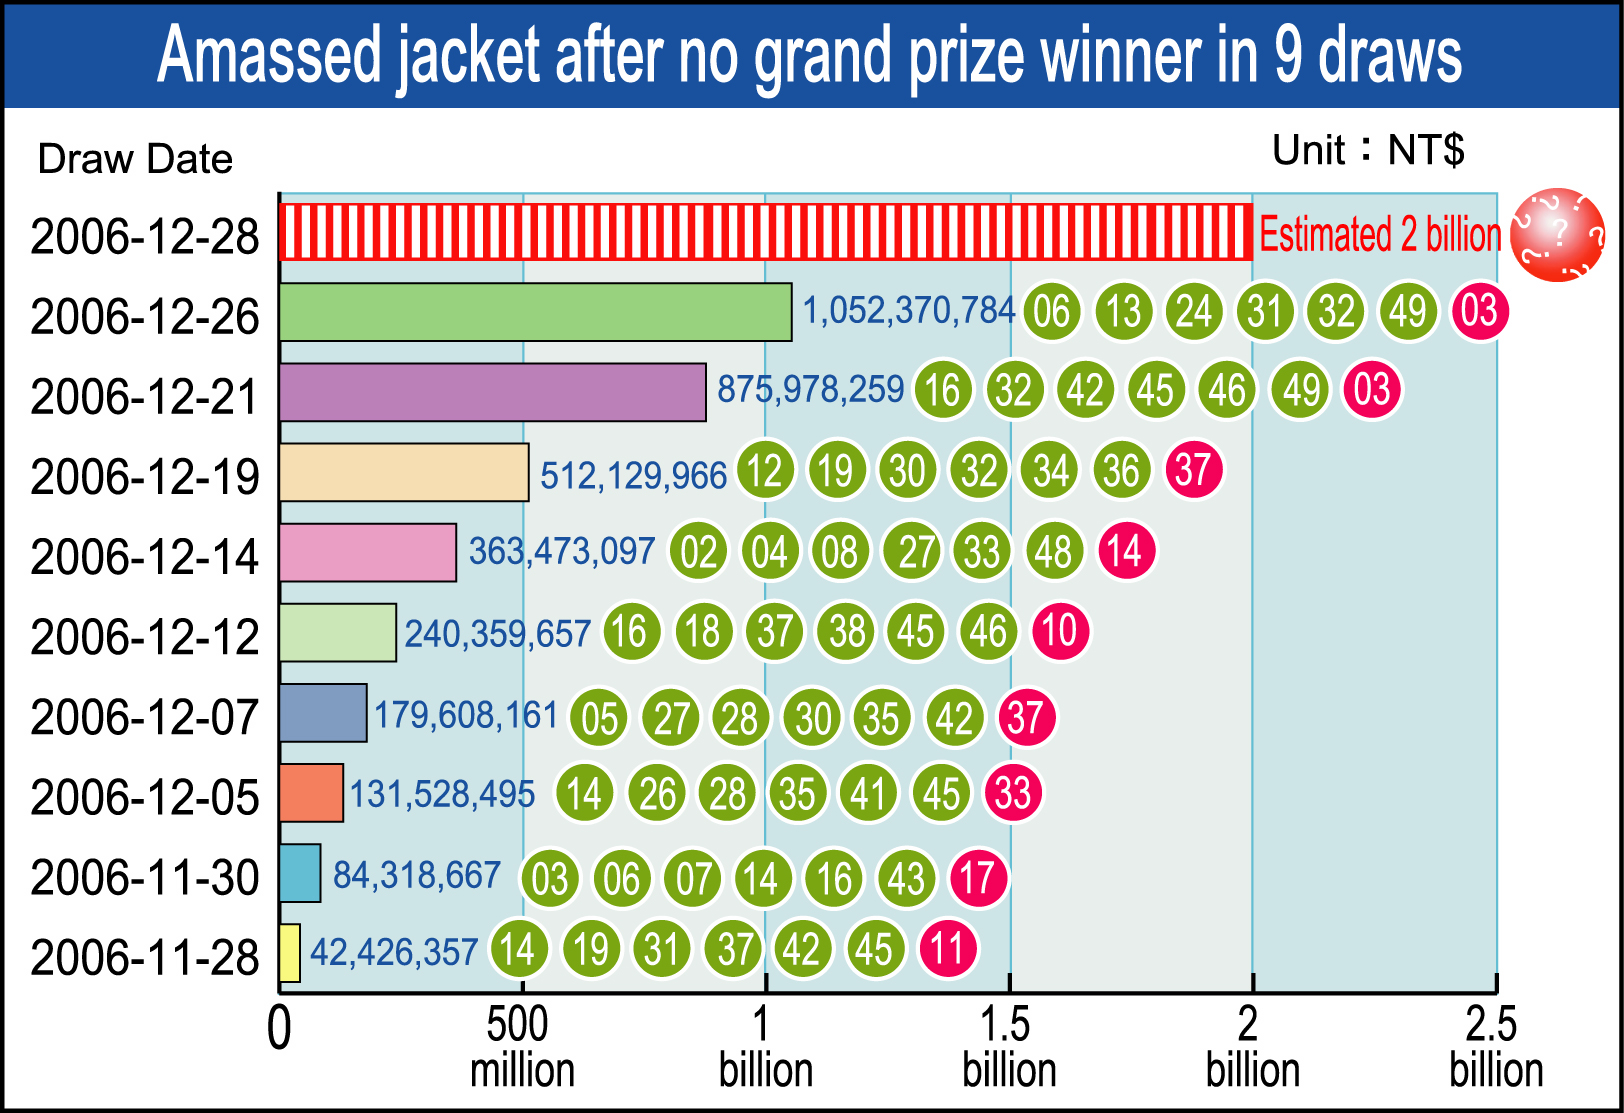 Taiwan big lottery could reach historic level of NT$2 billion after no grand prize winner in 9 draws.